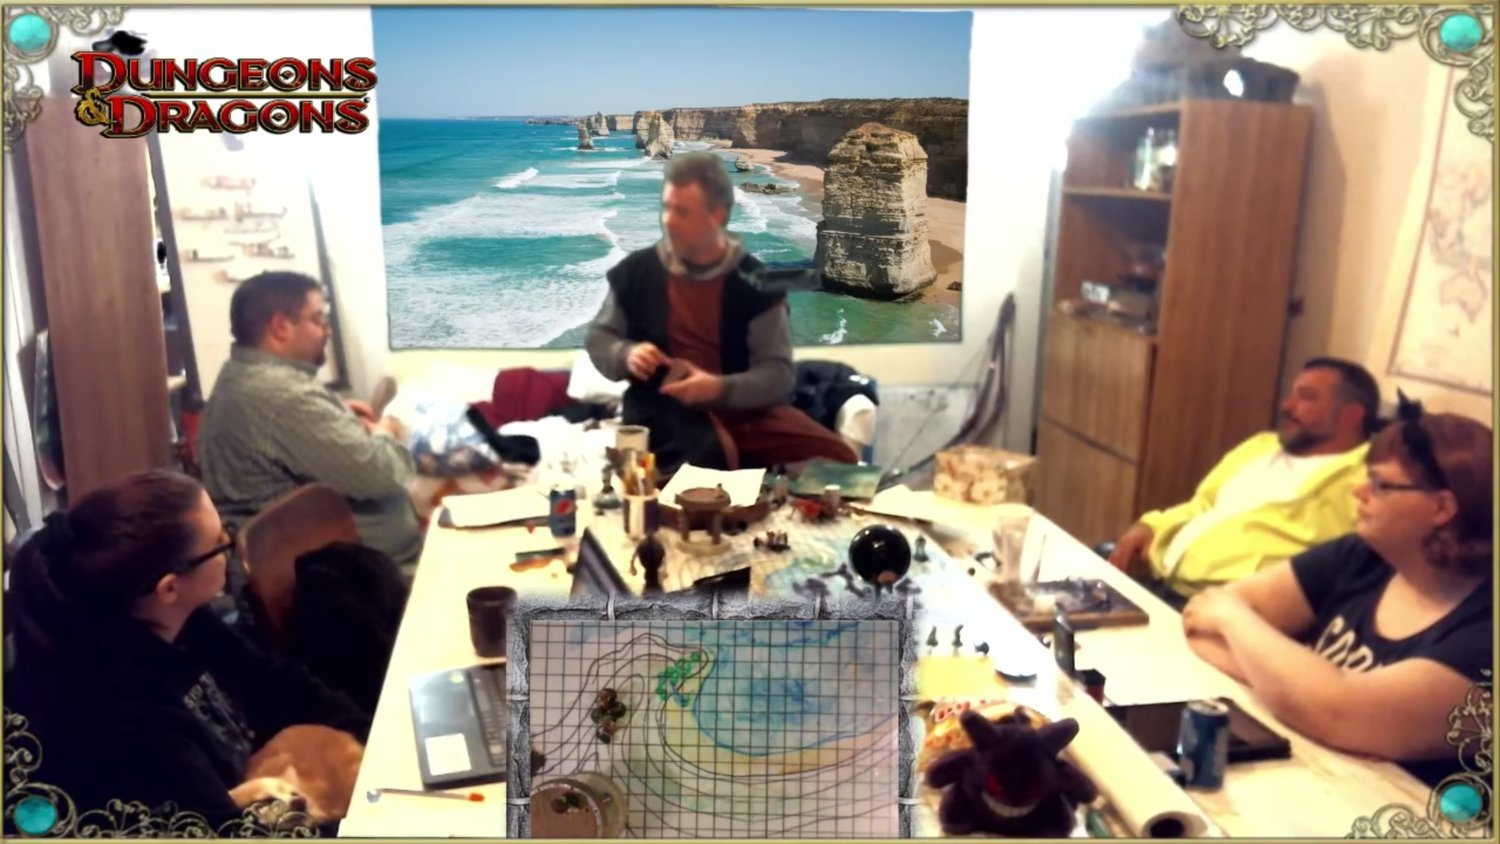 Paladin Gets Pissed During DUNGEONS & DRAGONS Session And Attacks